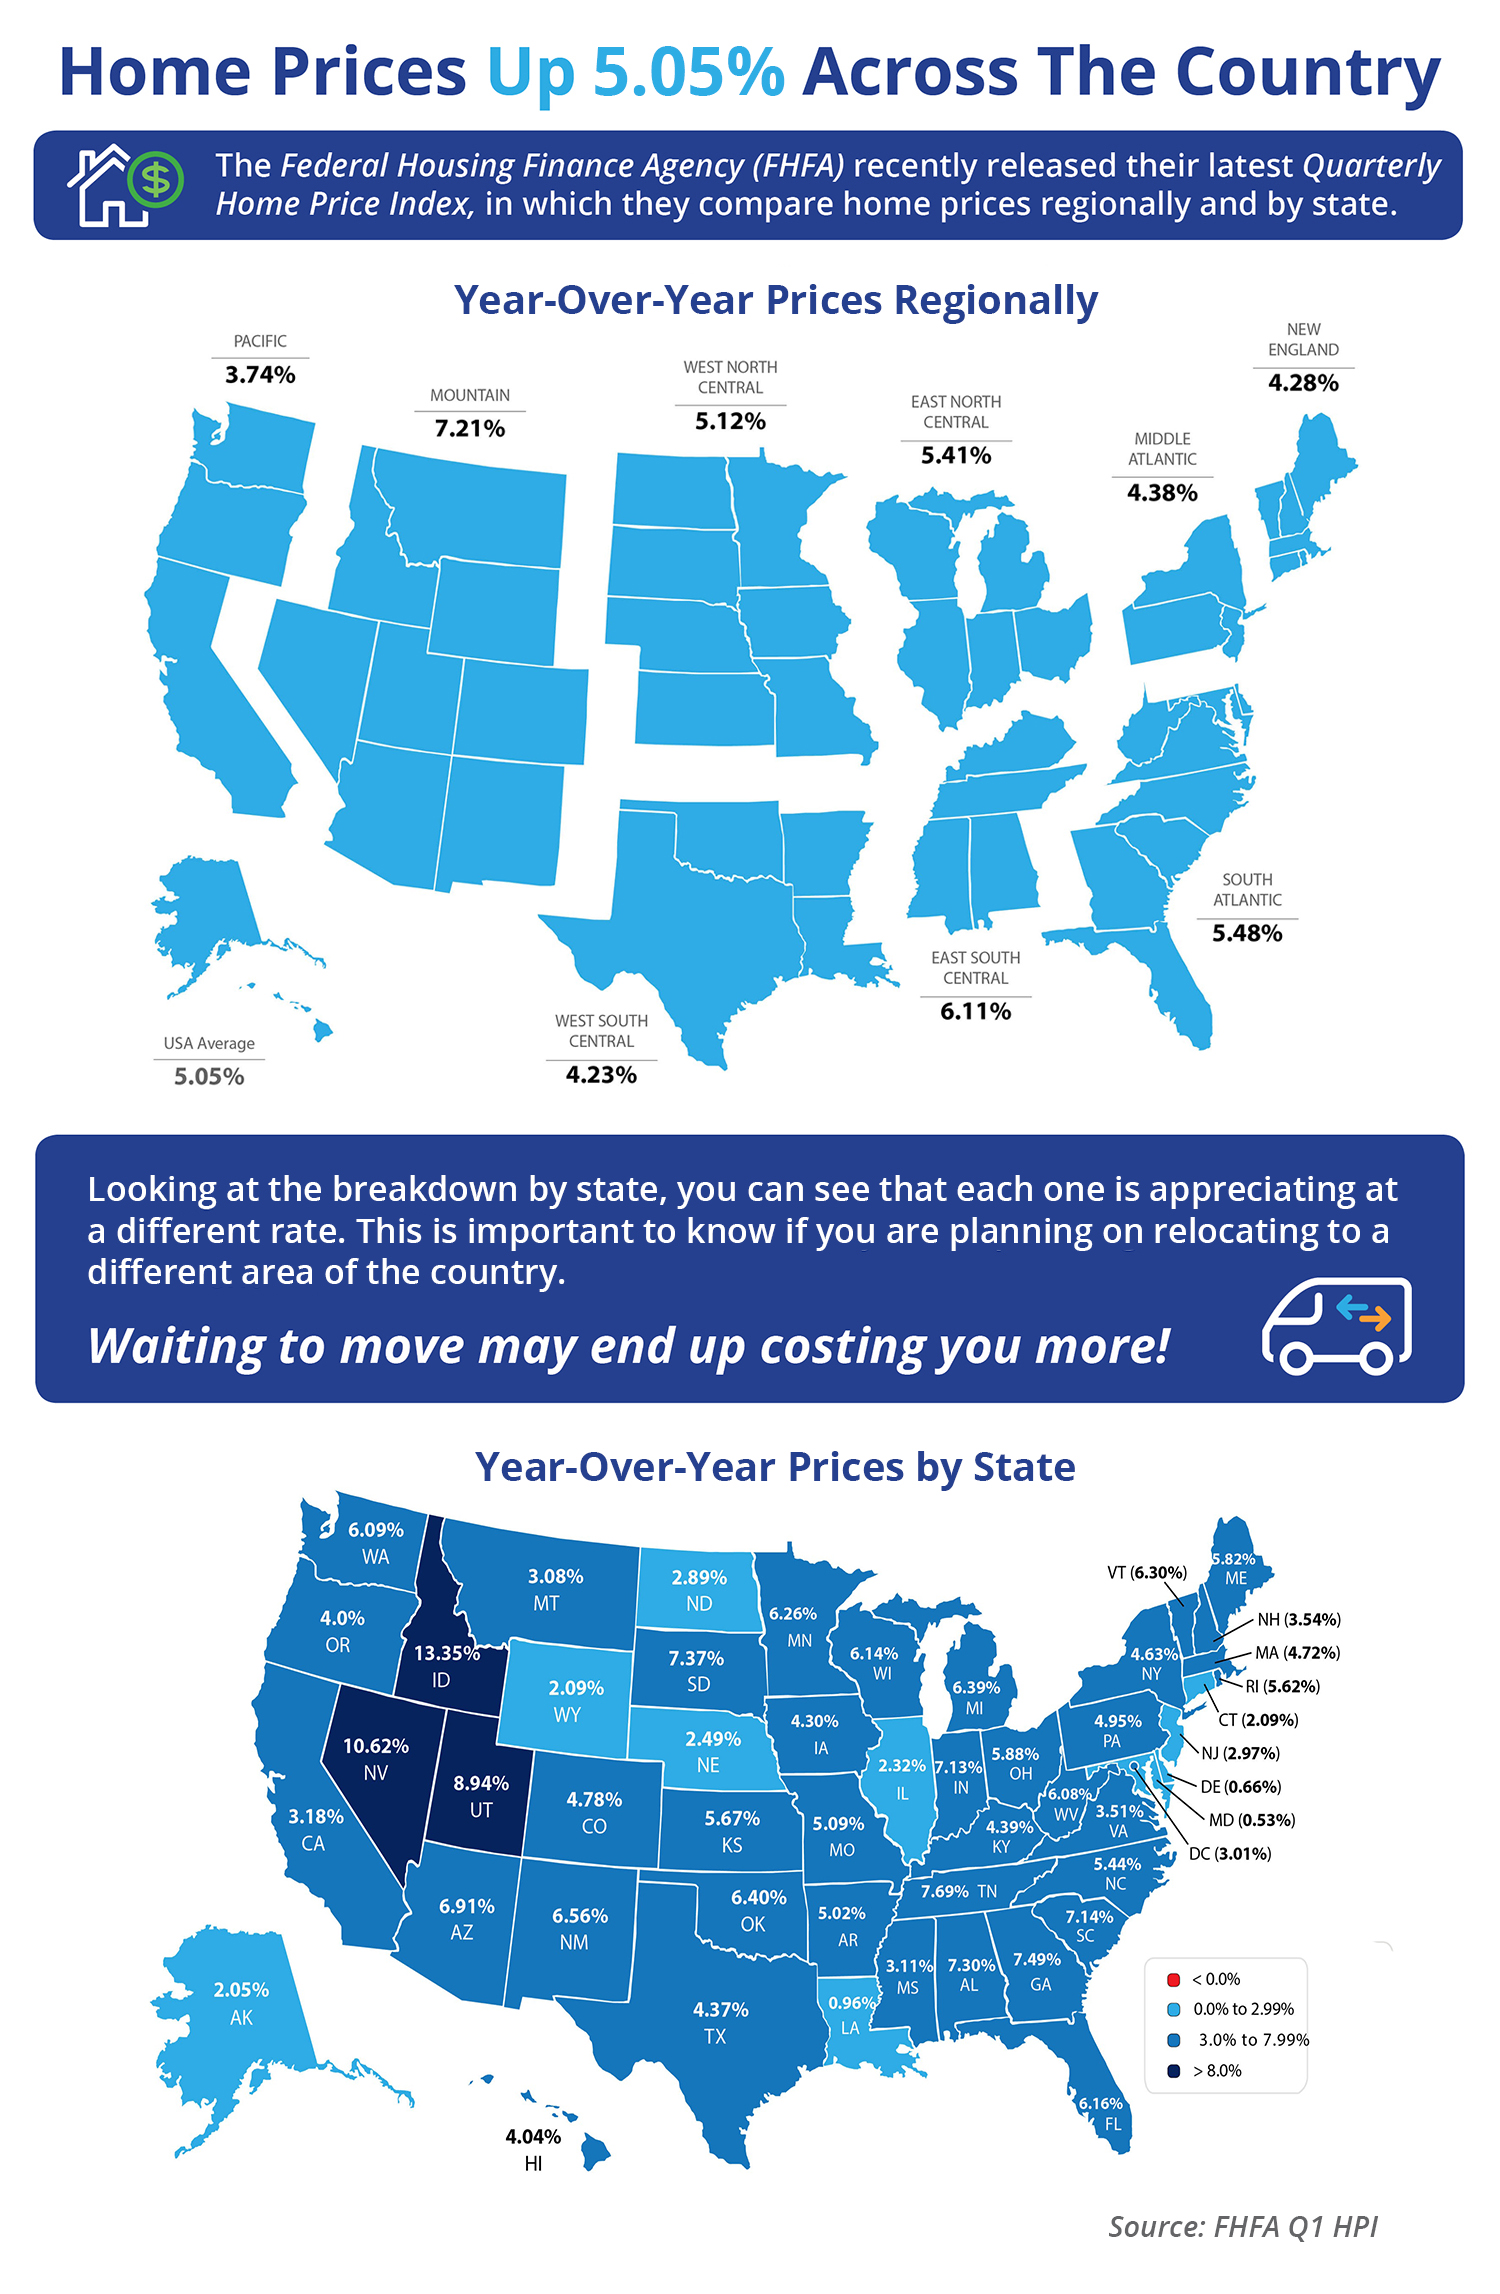 Home Prices Up 5.05% Across the Country [INFOGRAPHIC] | Simplifying The Market